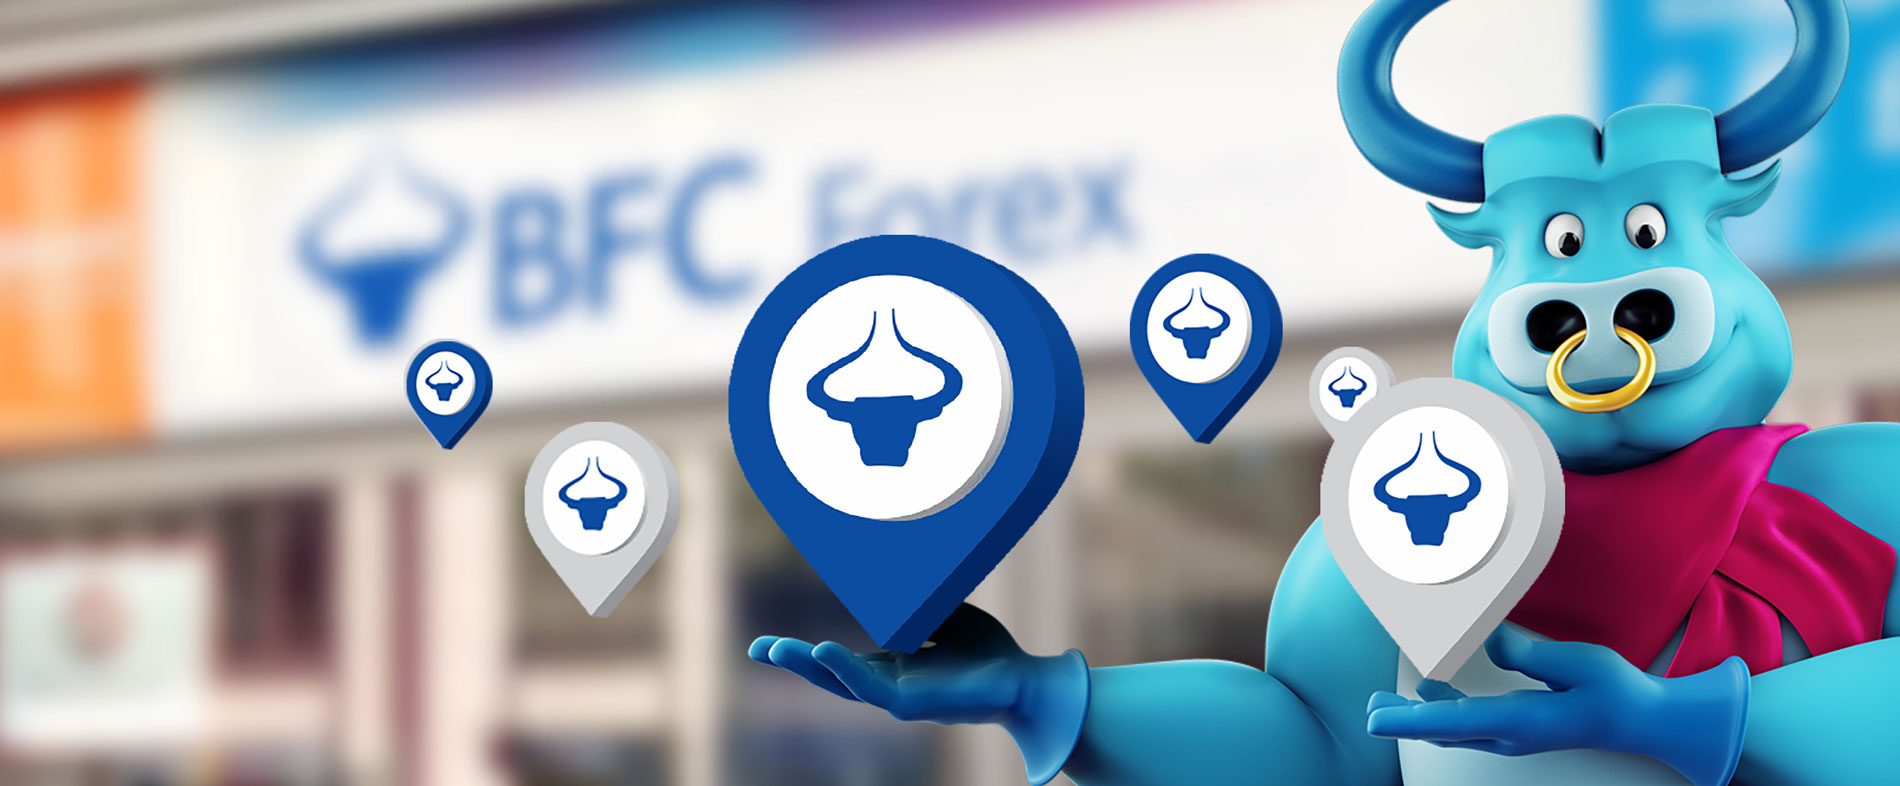 About bfc forex kailash investments